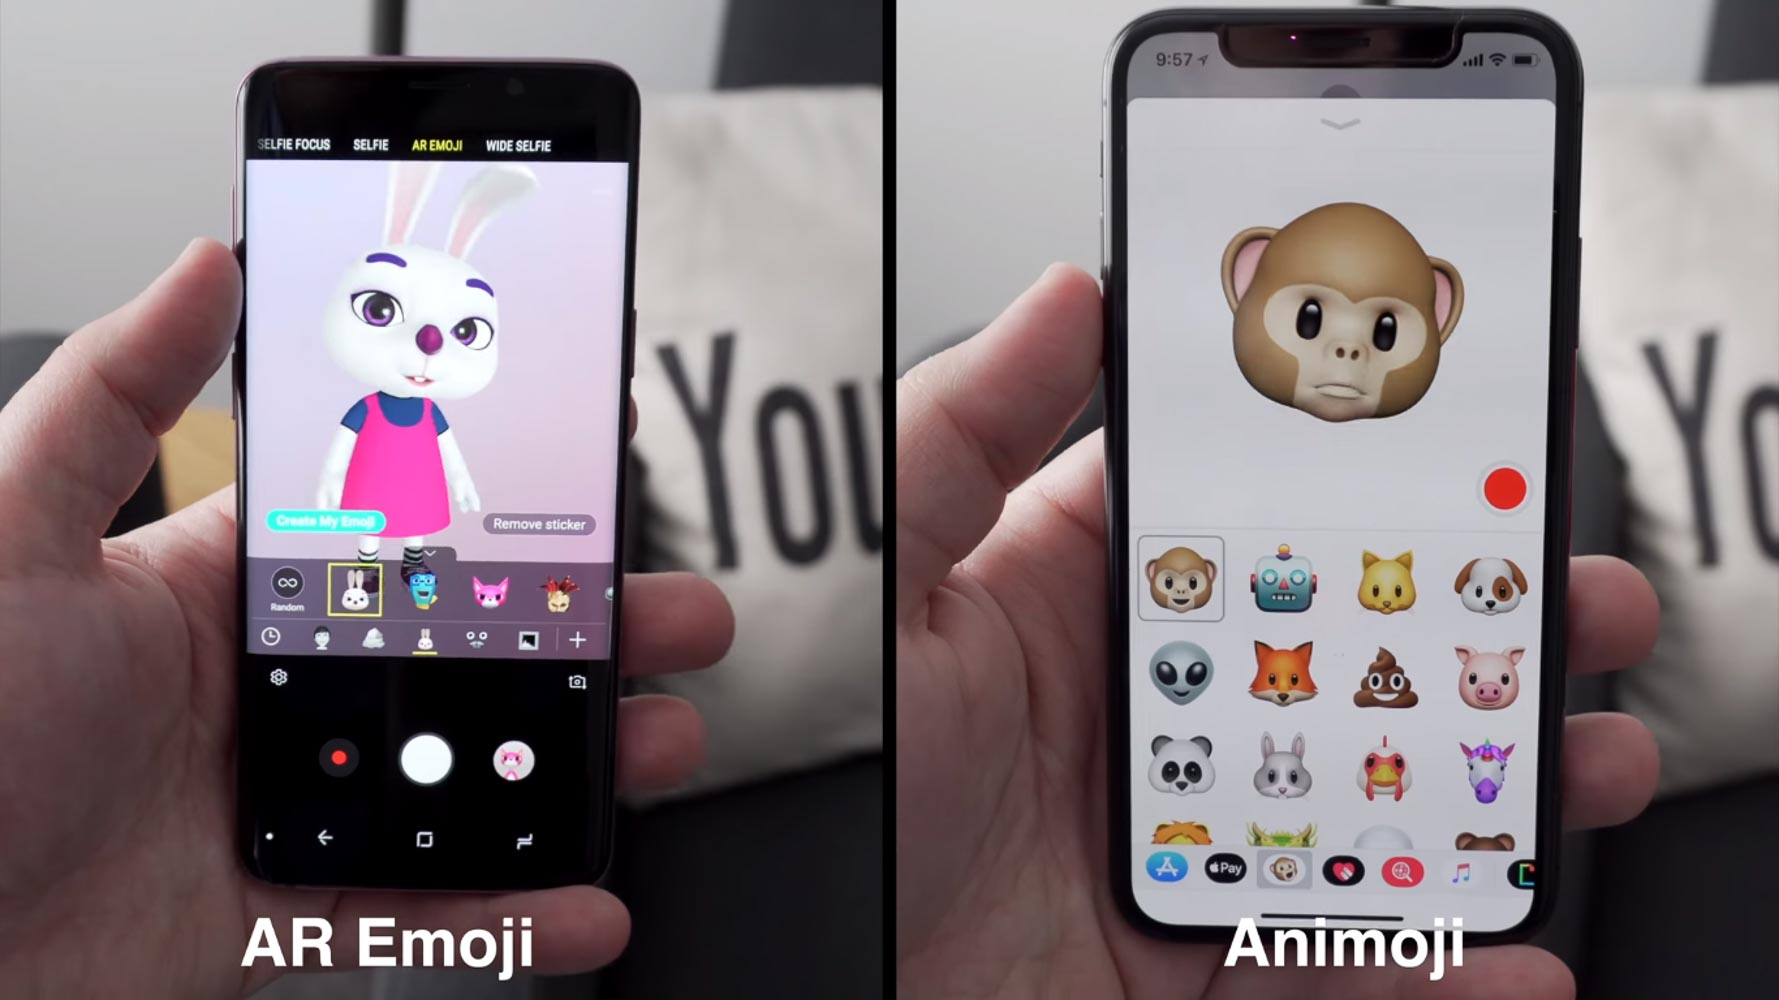 Animoji Vs AR Emoji